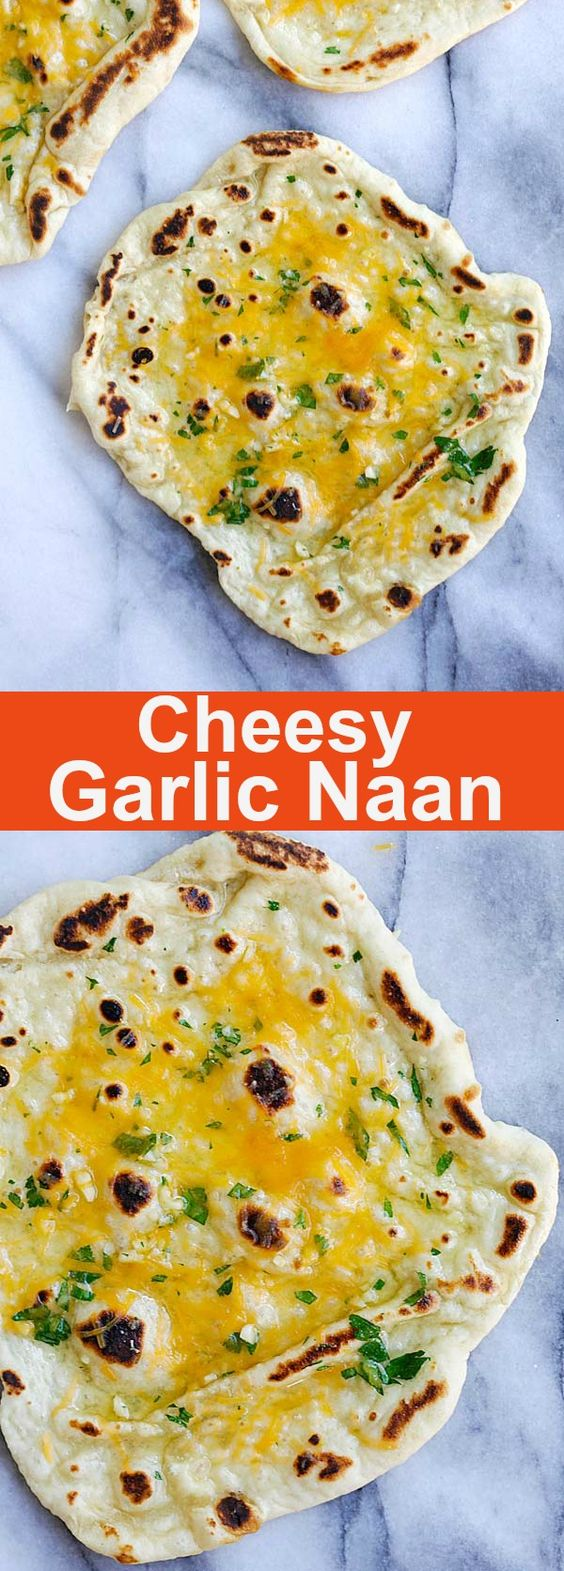 Cheesy Garlic Naan – homemade naan topped with garlic and cheddar cheese. Cheesy, buttery, garlicky naan that you can't stop eating | rasamalaysia.com